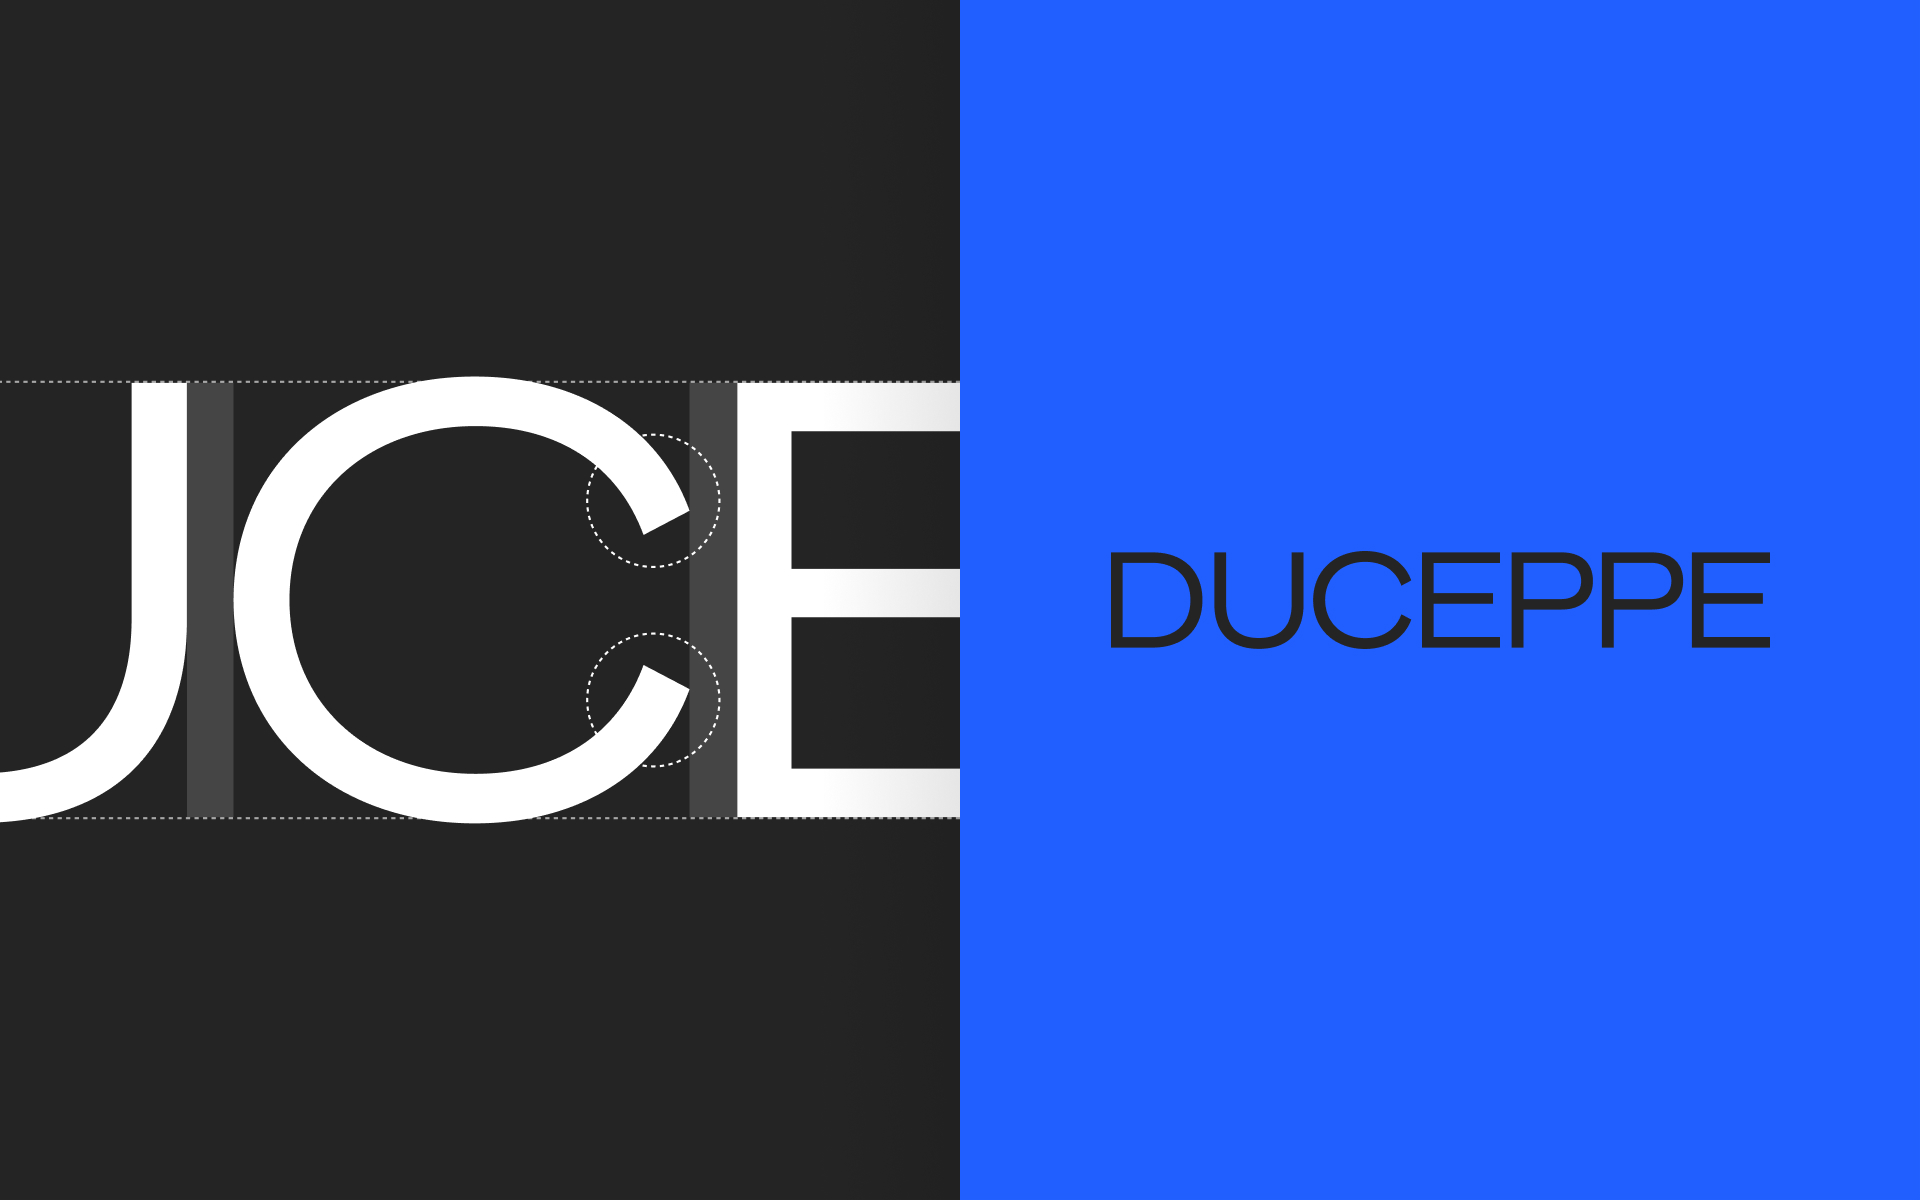 Duceppe 5